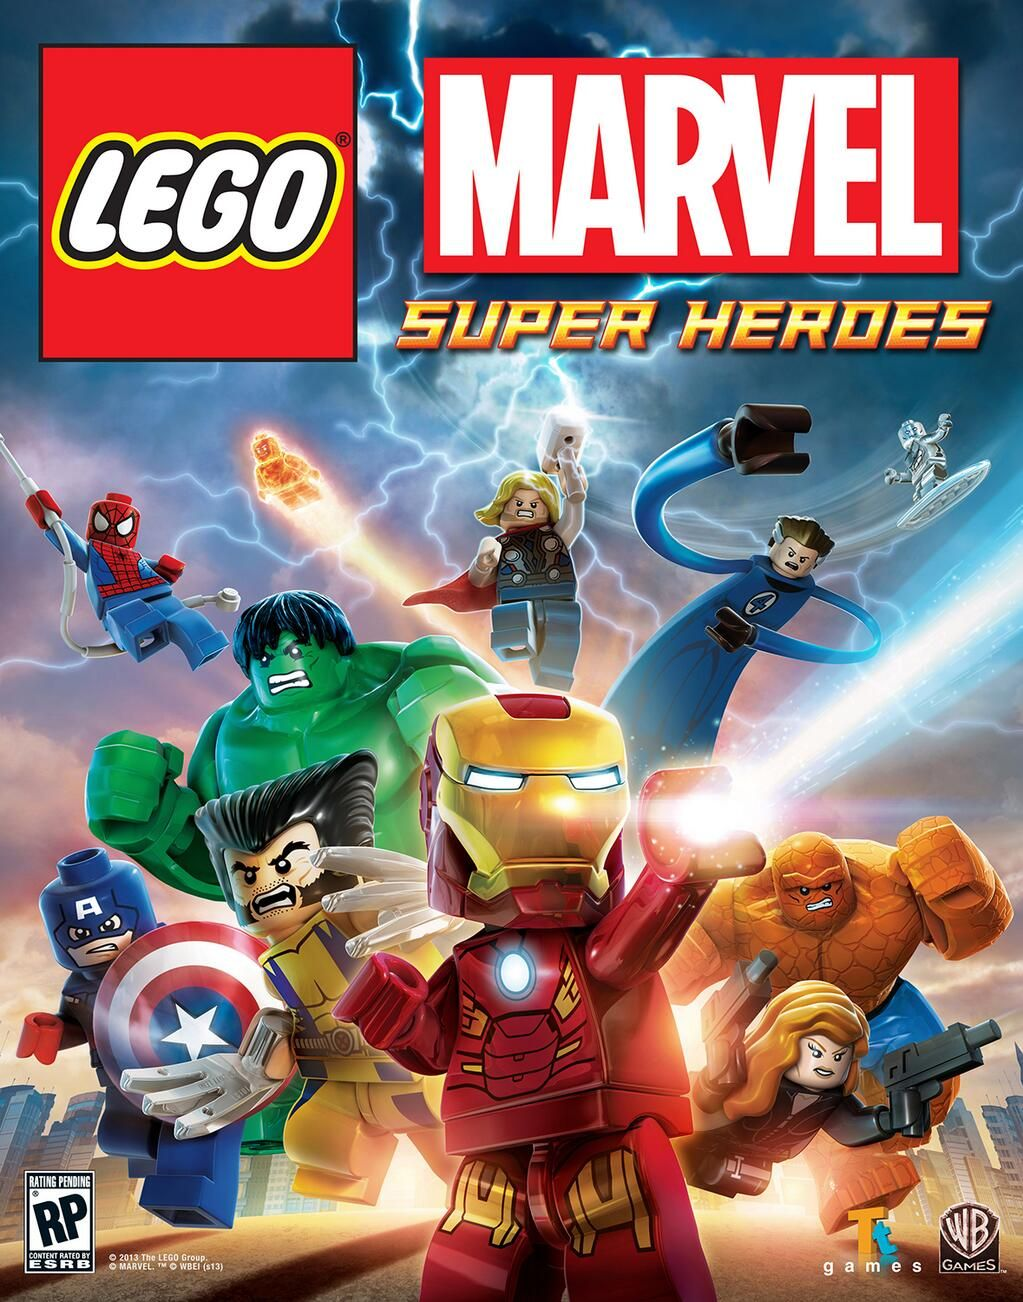 [Image: file_177981_0_lego_marvel_cover.jpg]